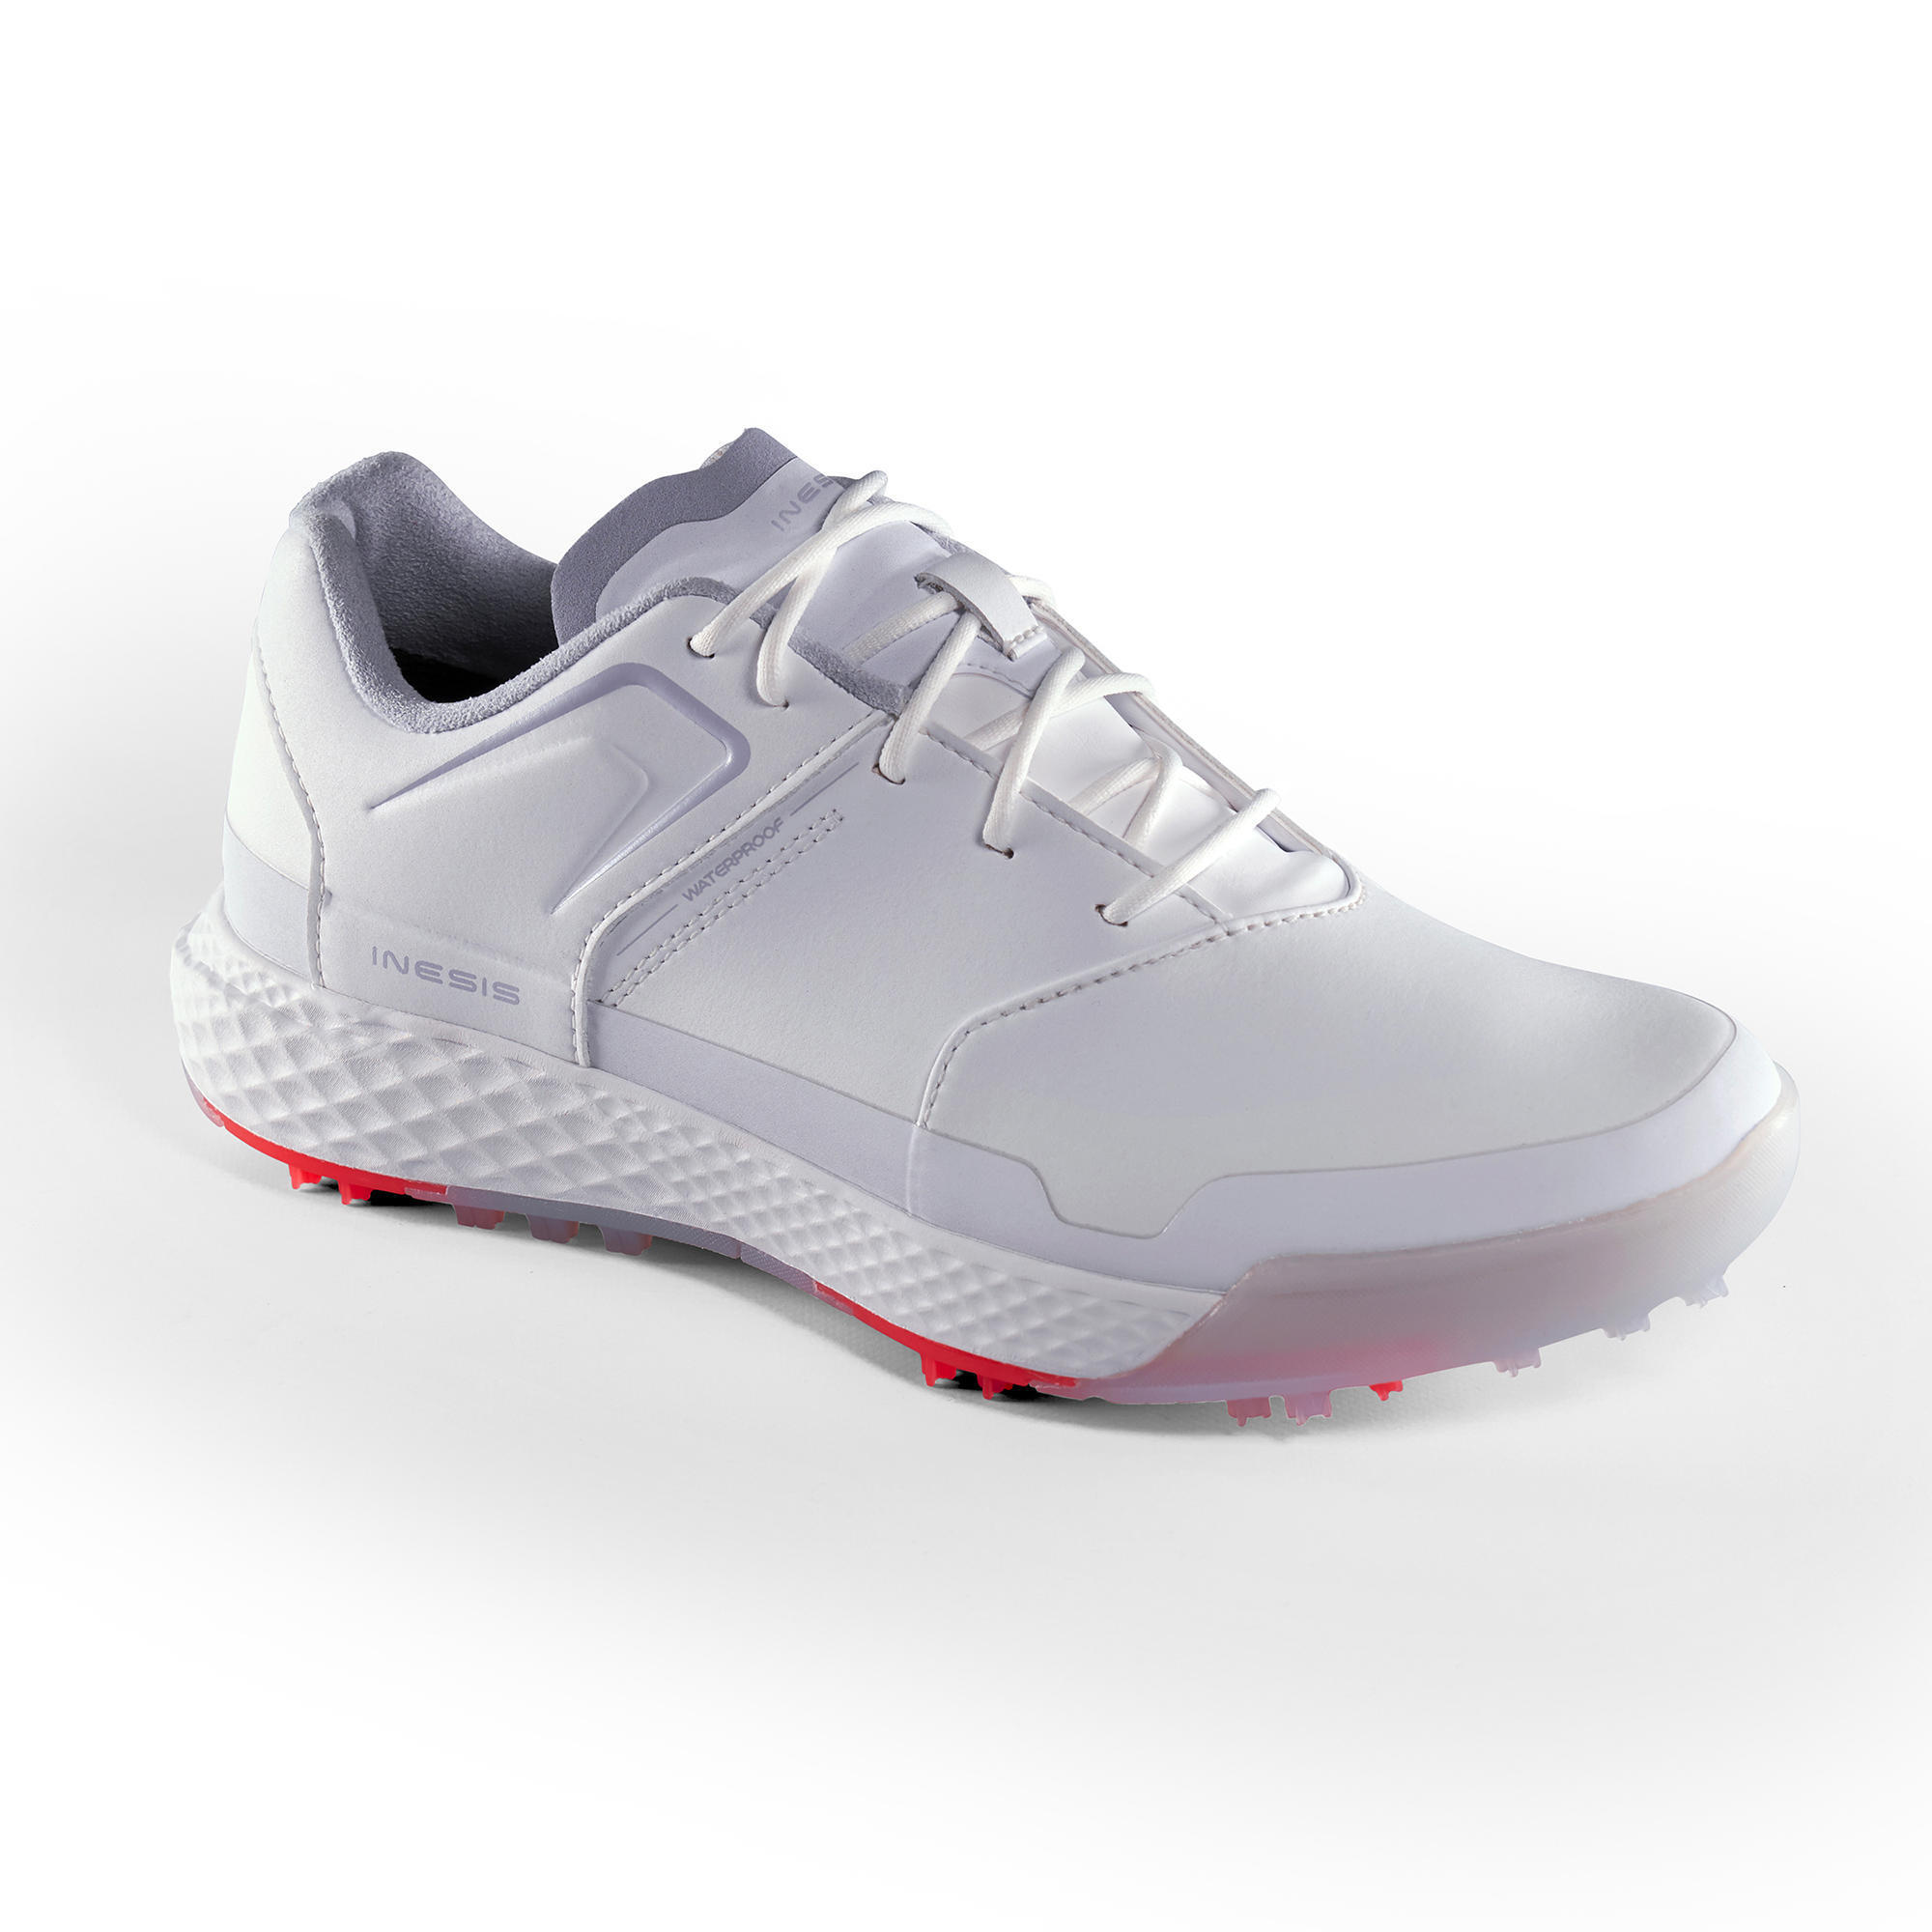 Inesis Golfschoenen dames Grip Waterproof wit